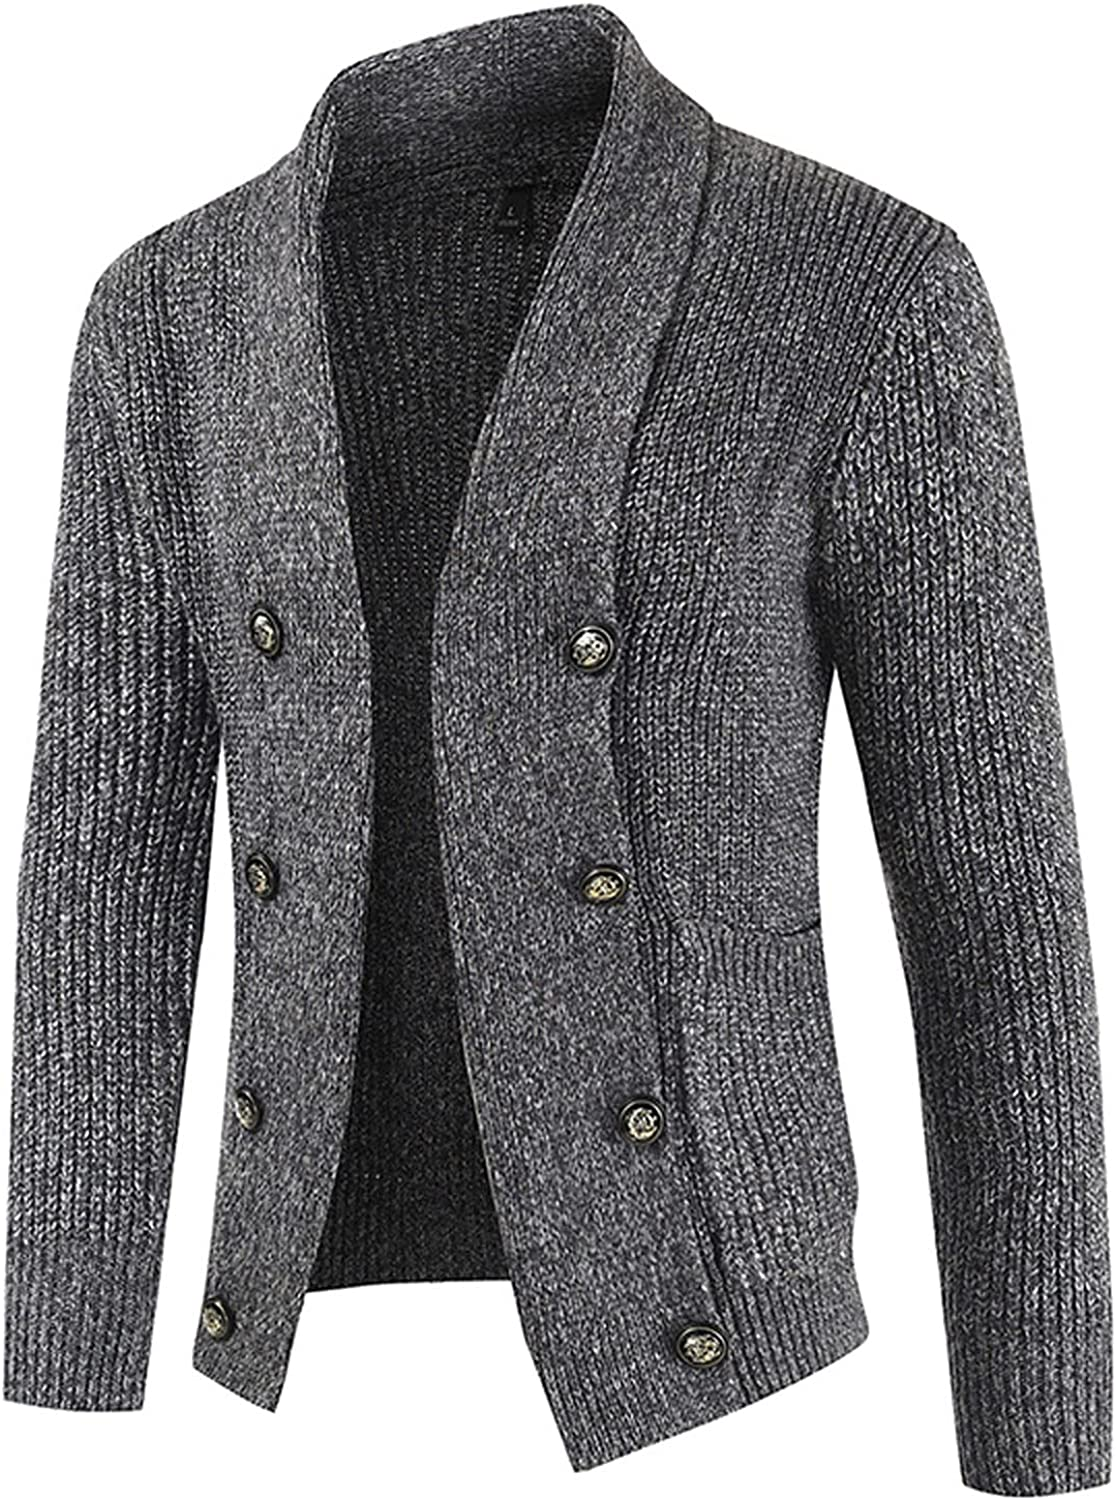 XXBR Cardigans Sweater for Mens, Wool Knit Button Open Front Lapel Collar Business Casual Blazers Flomal Outerwear Coat